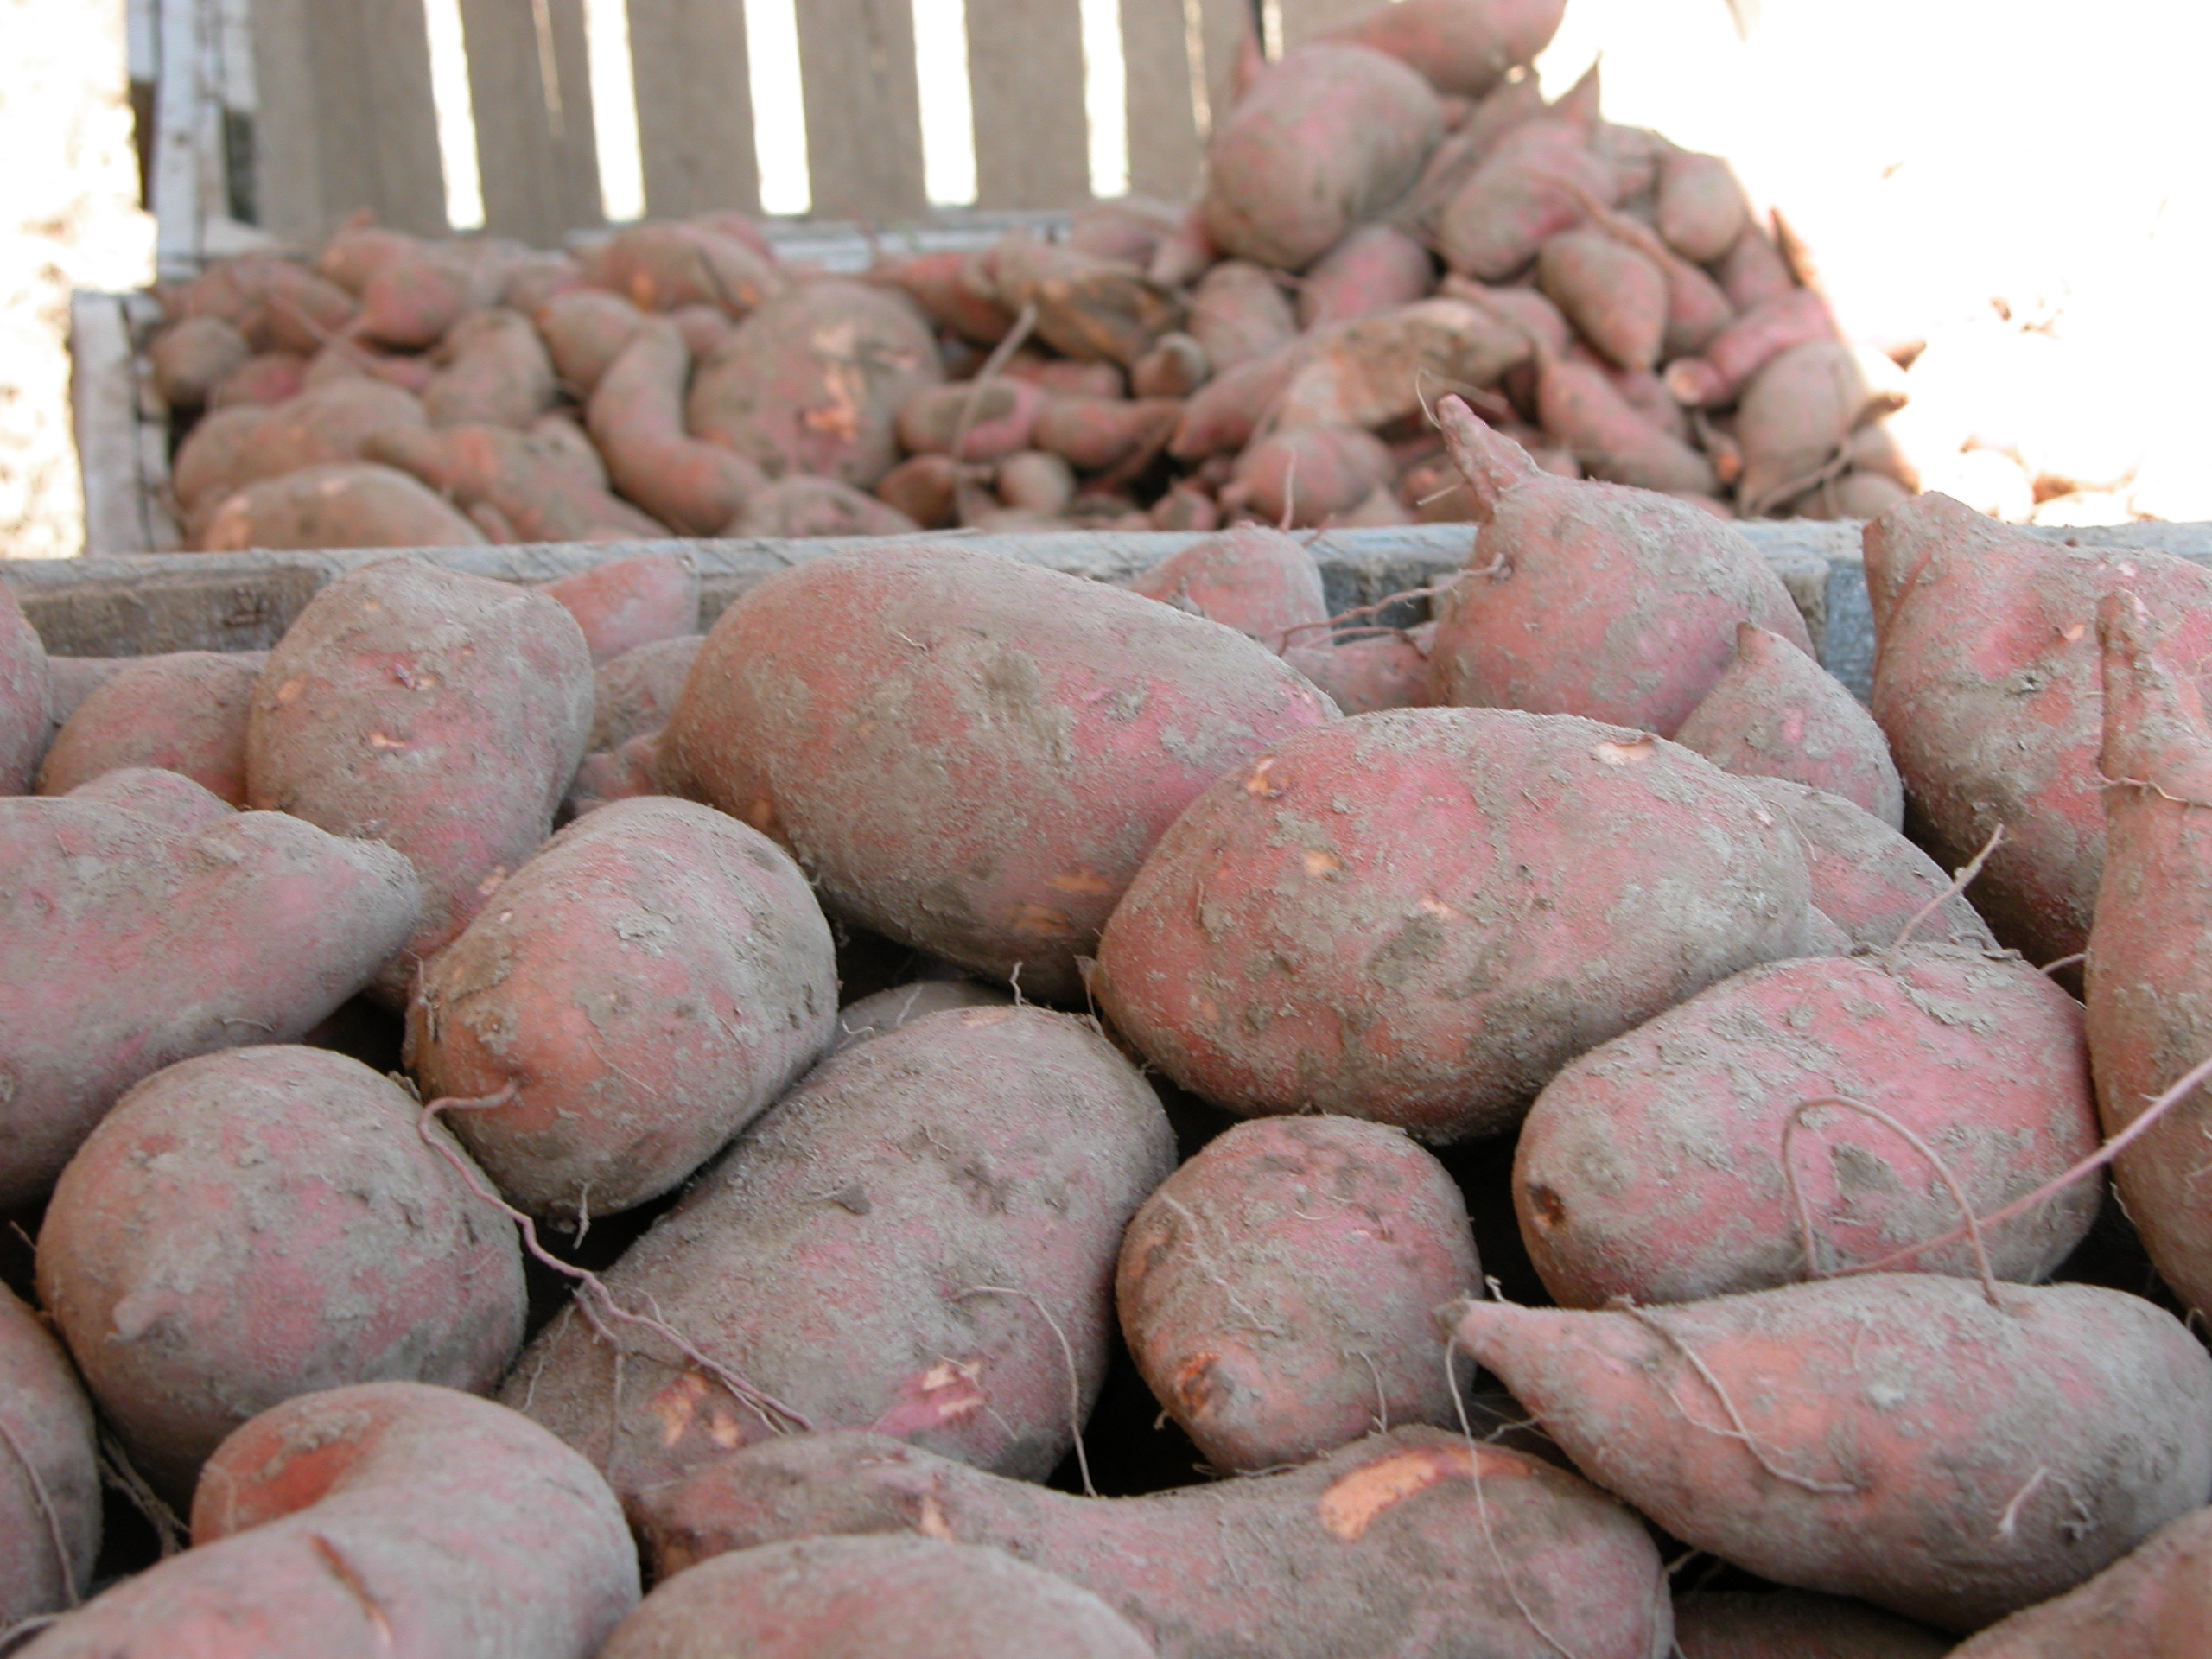 Sweet potato planting delayed by rain